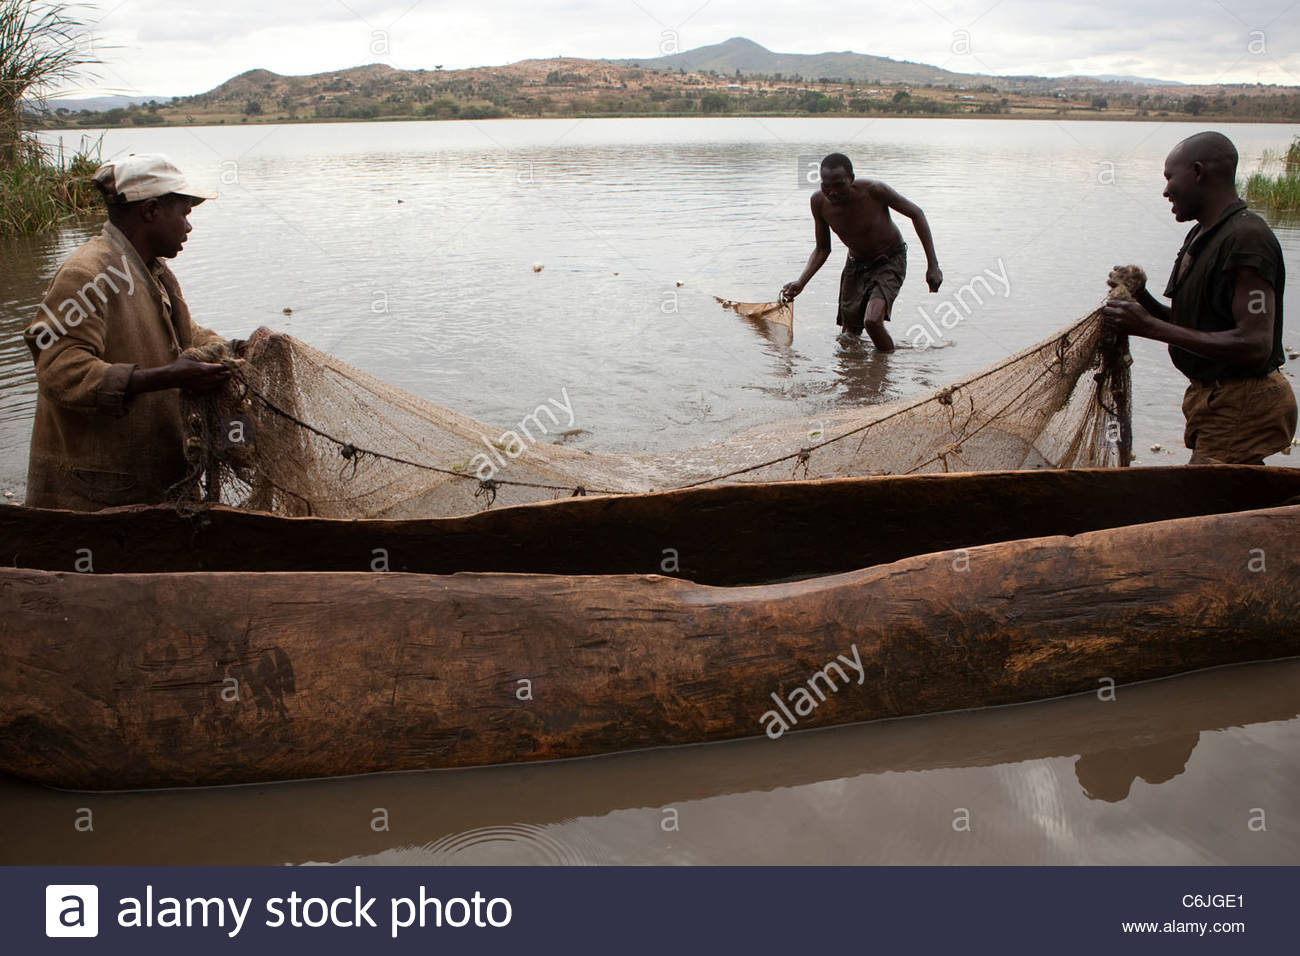 Fishermen in the water next to their dugout canoe pulling in their nets on the shore of Lake Babati - Stock Image